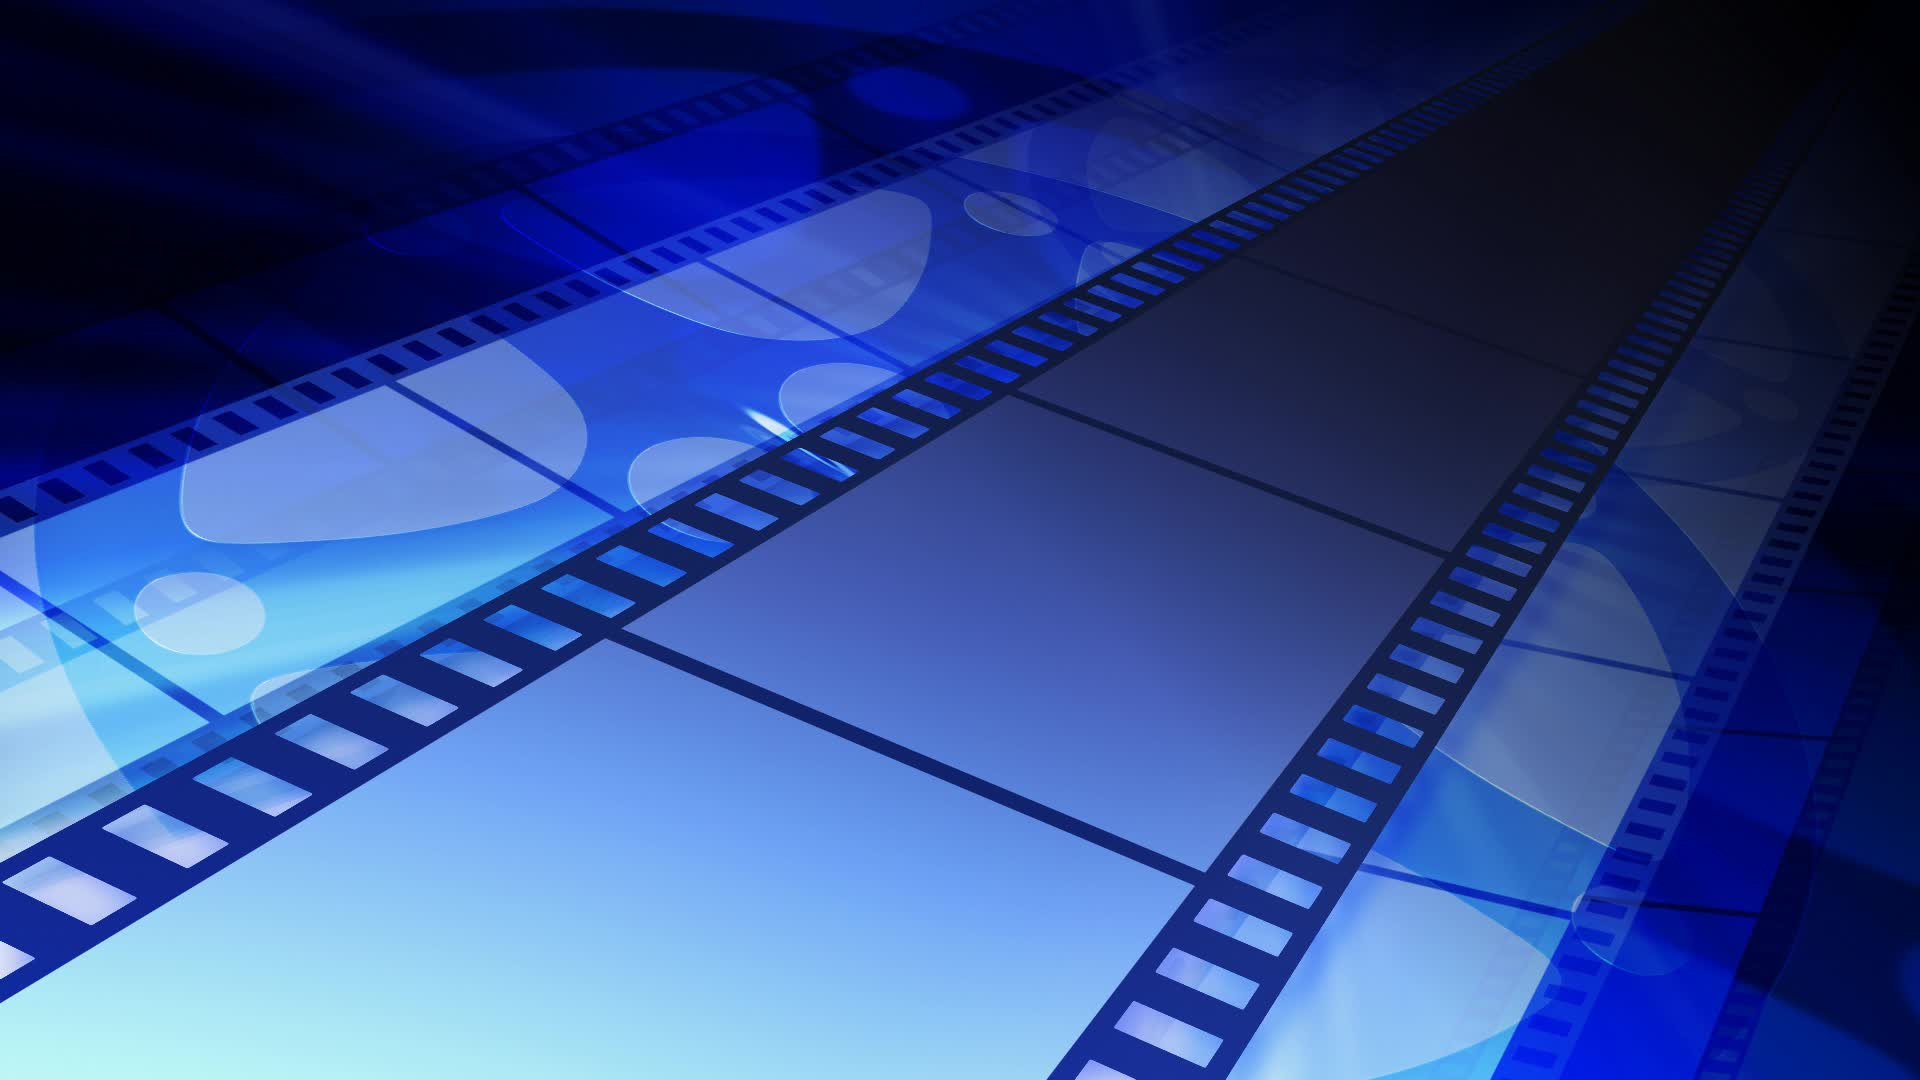 Cinema Background Stock Video 24725417 | HD Stock Footage